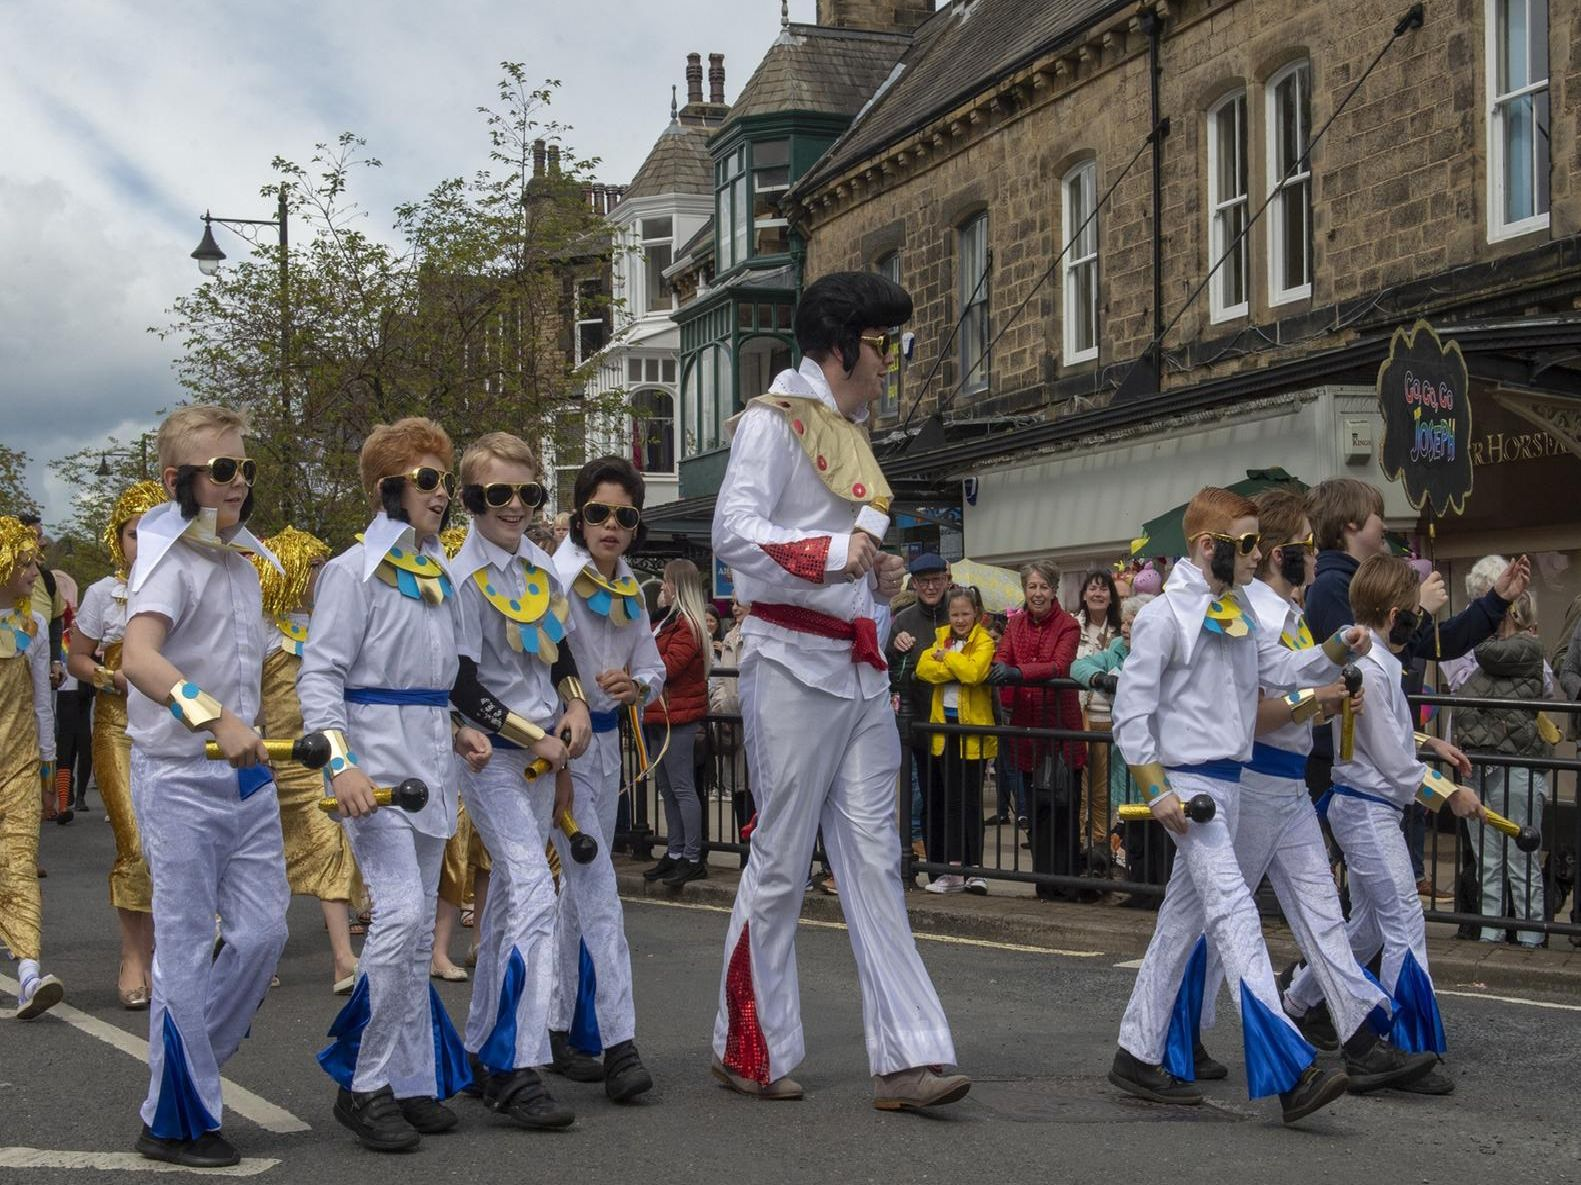 A group of Elvises at the Ilkley Carnival parade